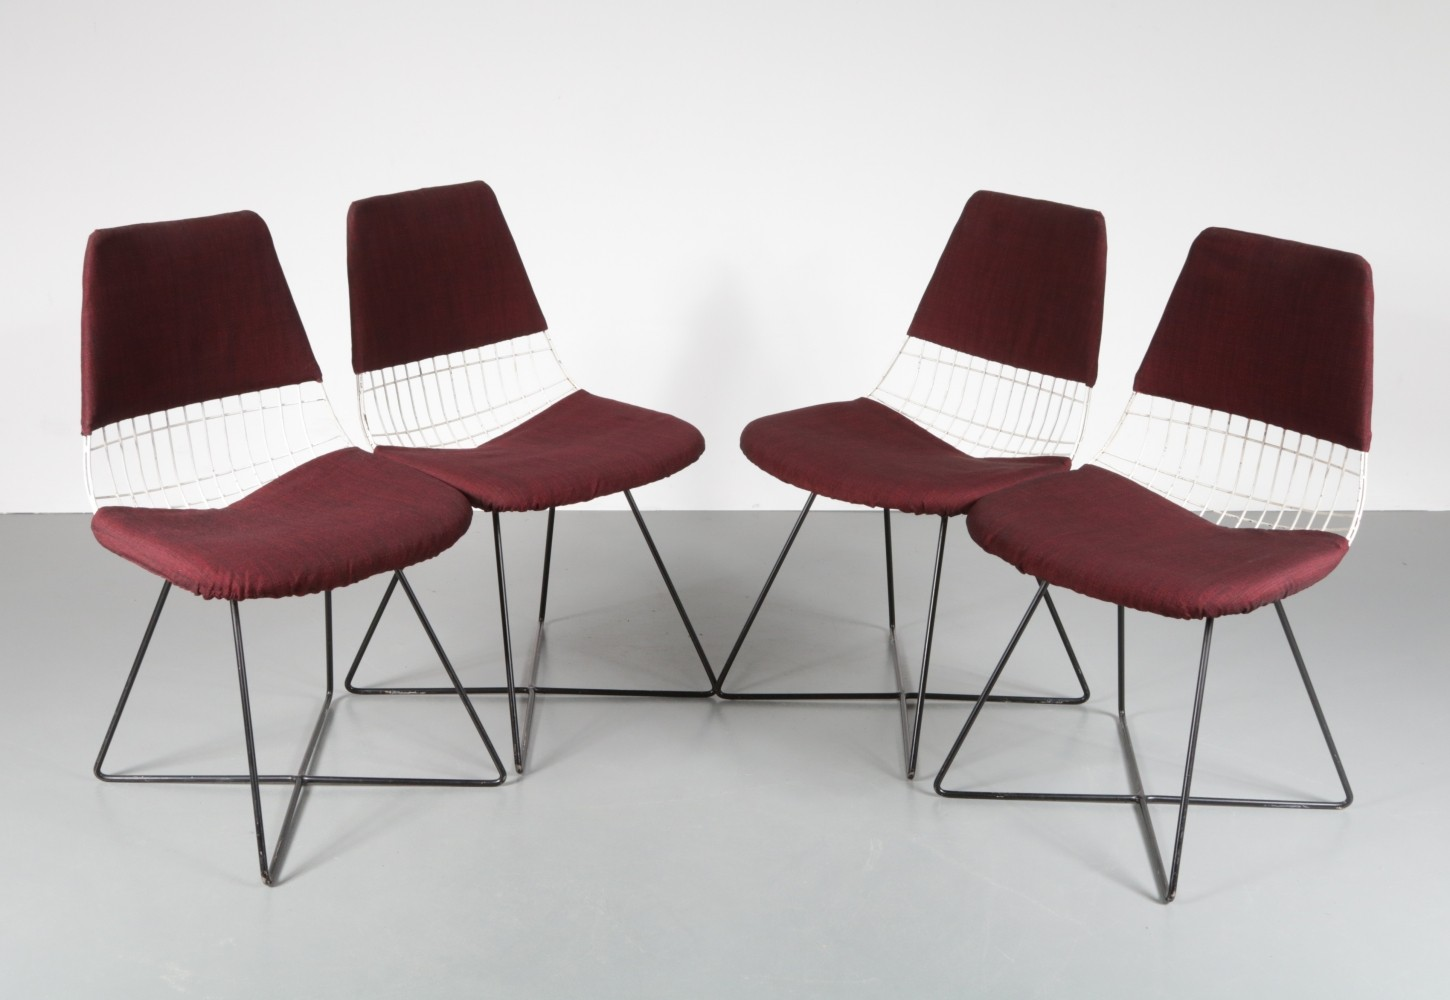 Set of 4 dining chairs by Floris H. Fiedeldij for Artimeta, 1950s